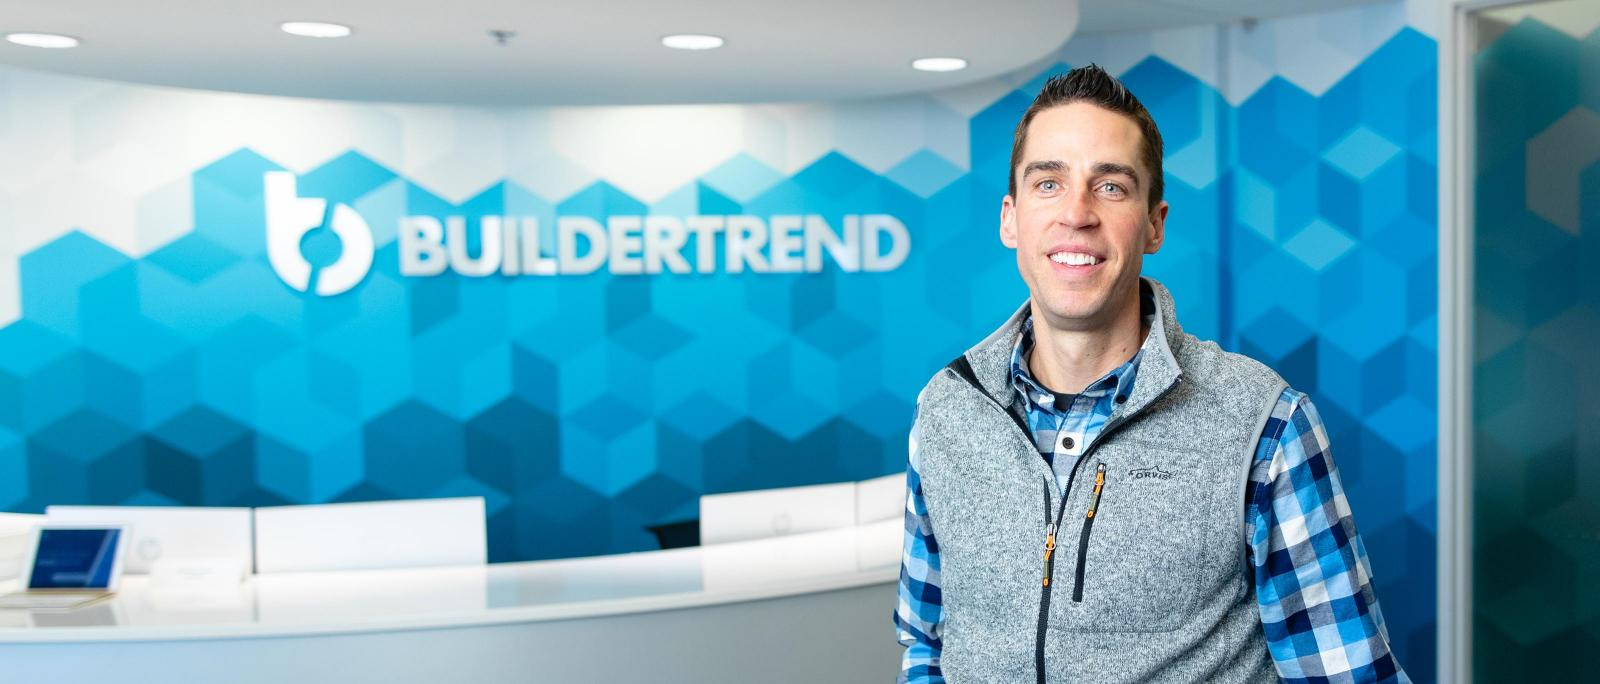 Luke Christiansen standing before Buildertrend sign